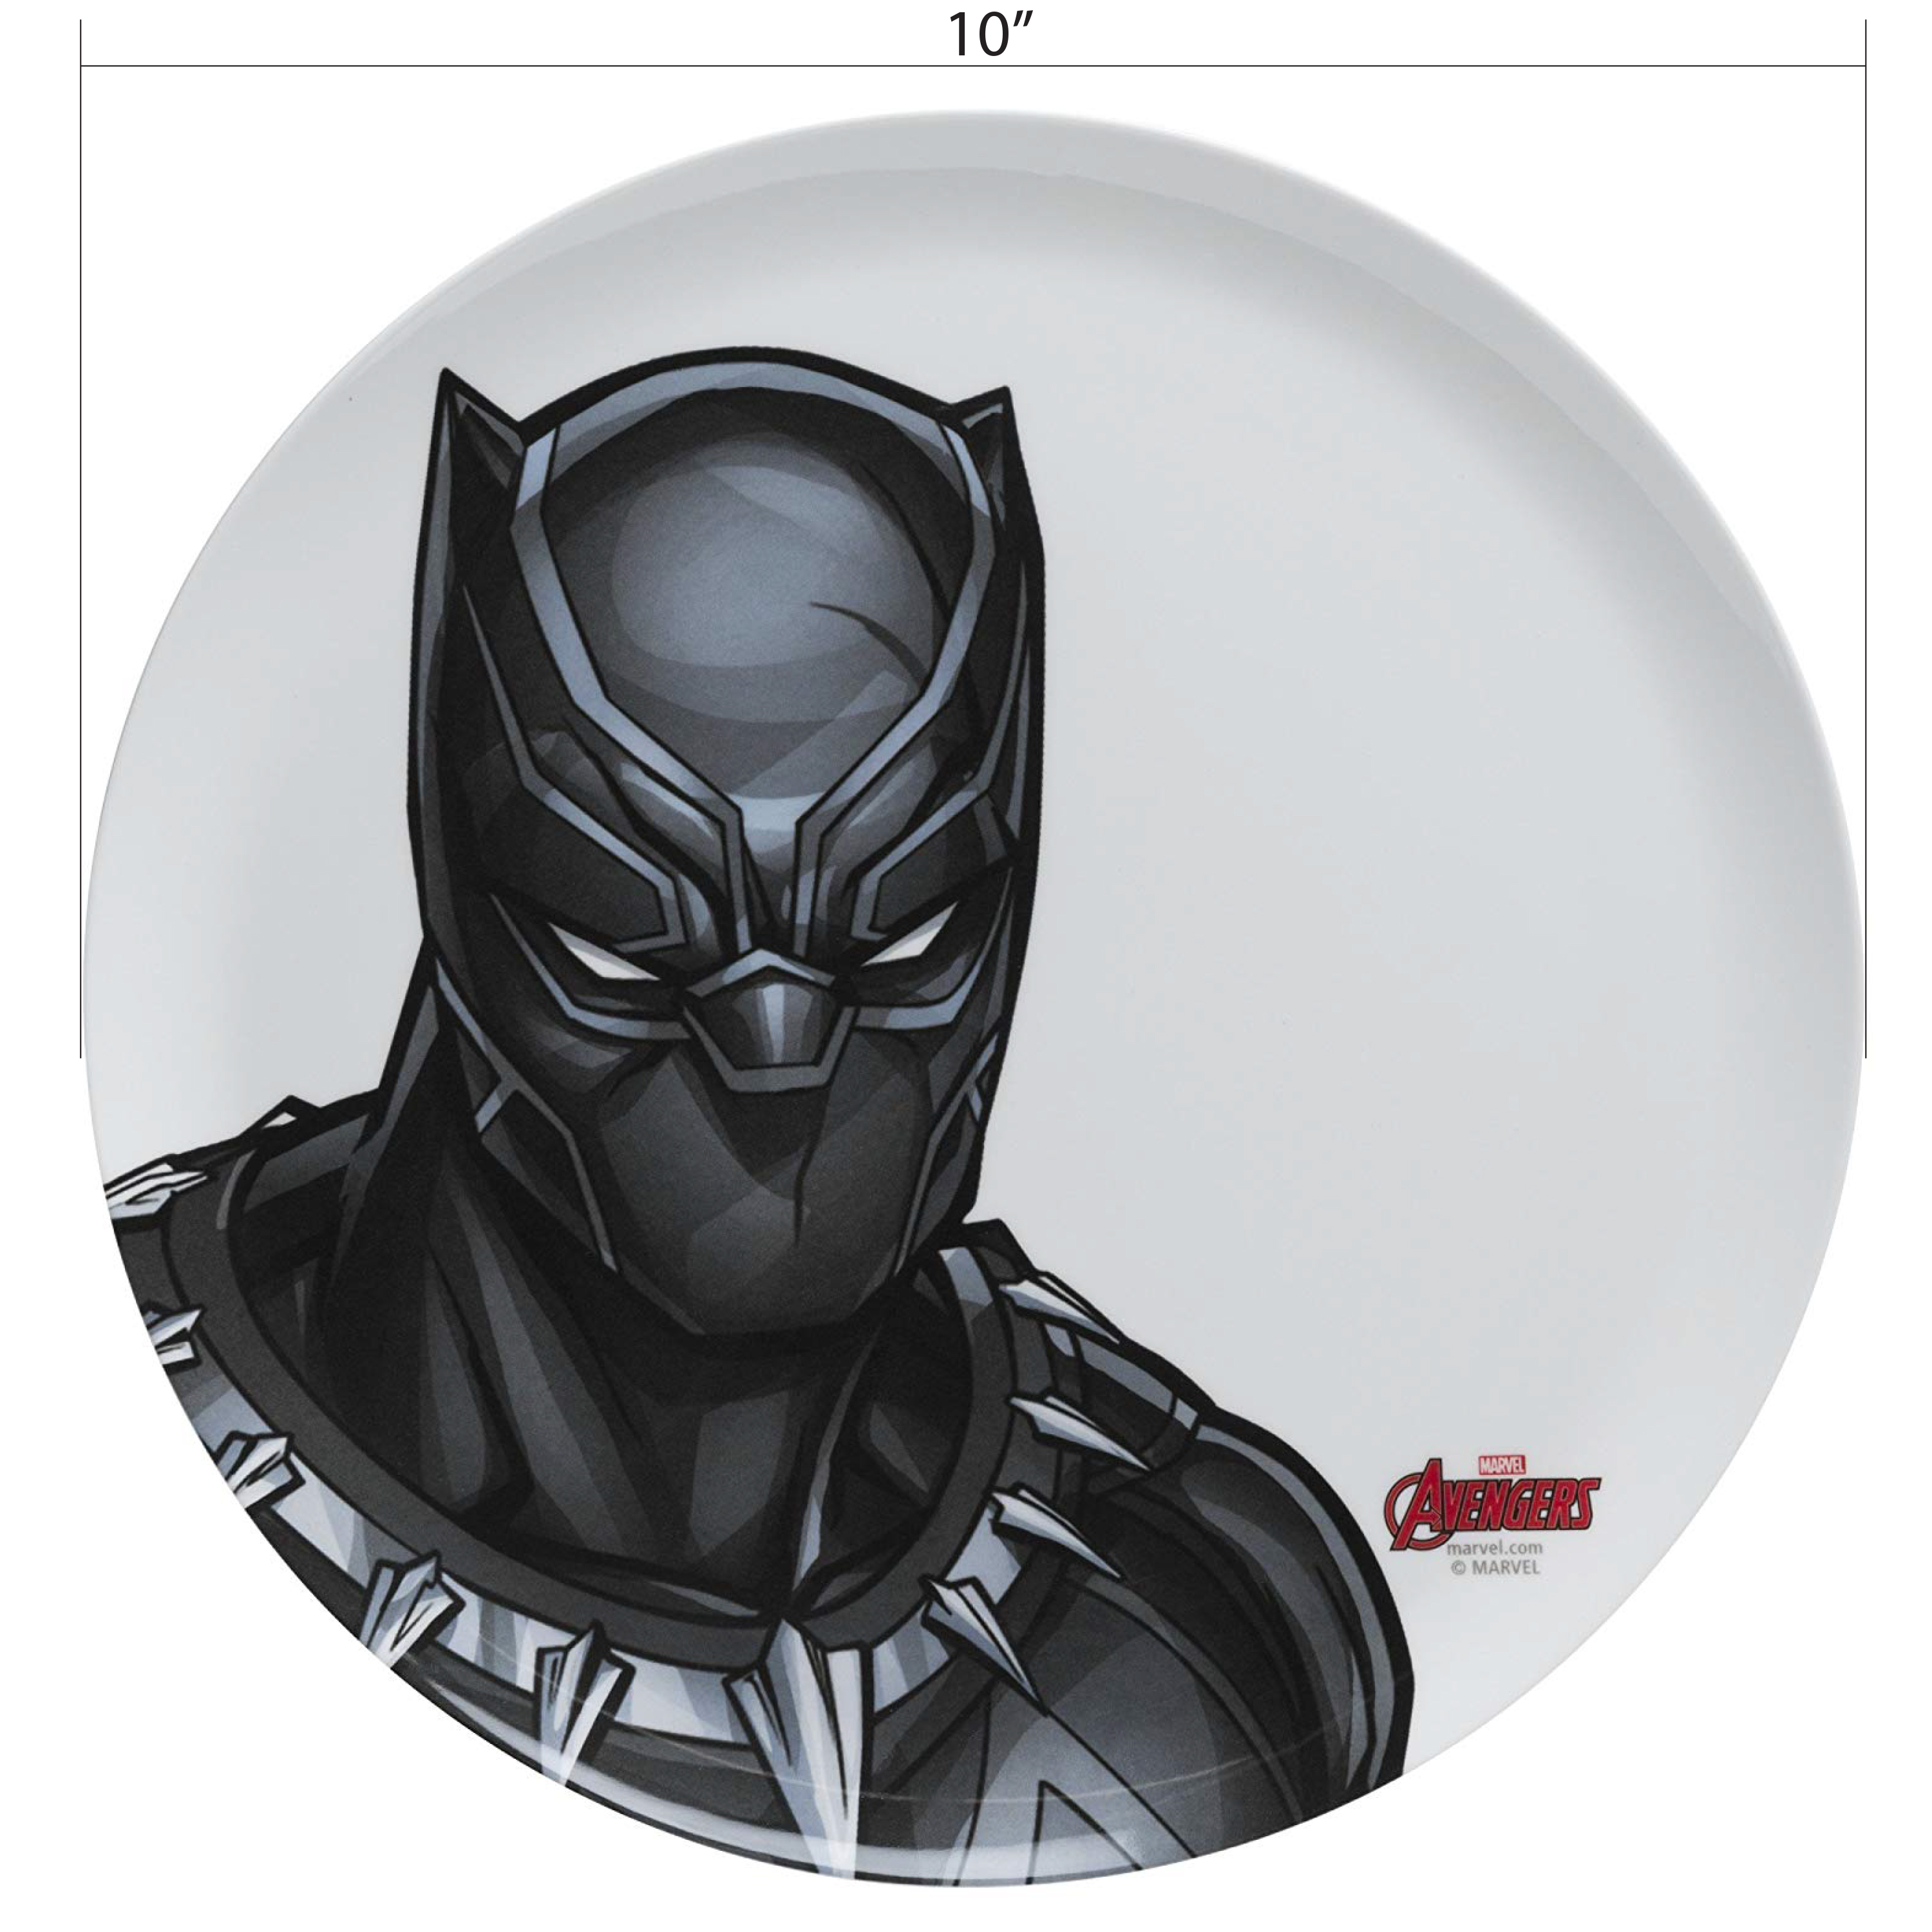 Marvel Comics Dinnerware Set, Black Panther & The Avengers, 2-piece set slideshow image 7